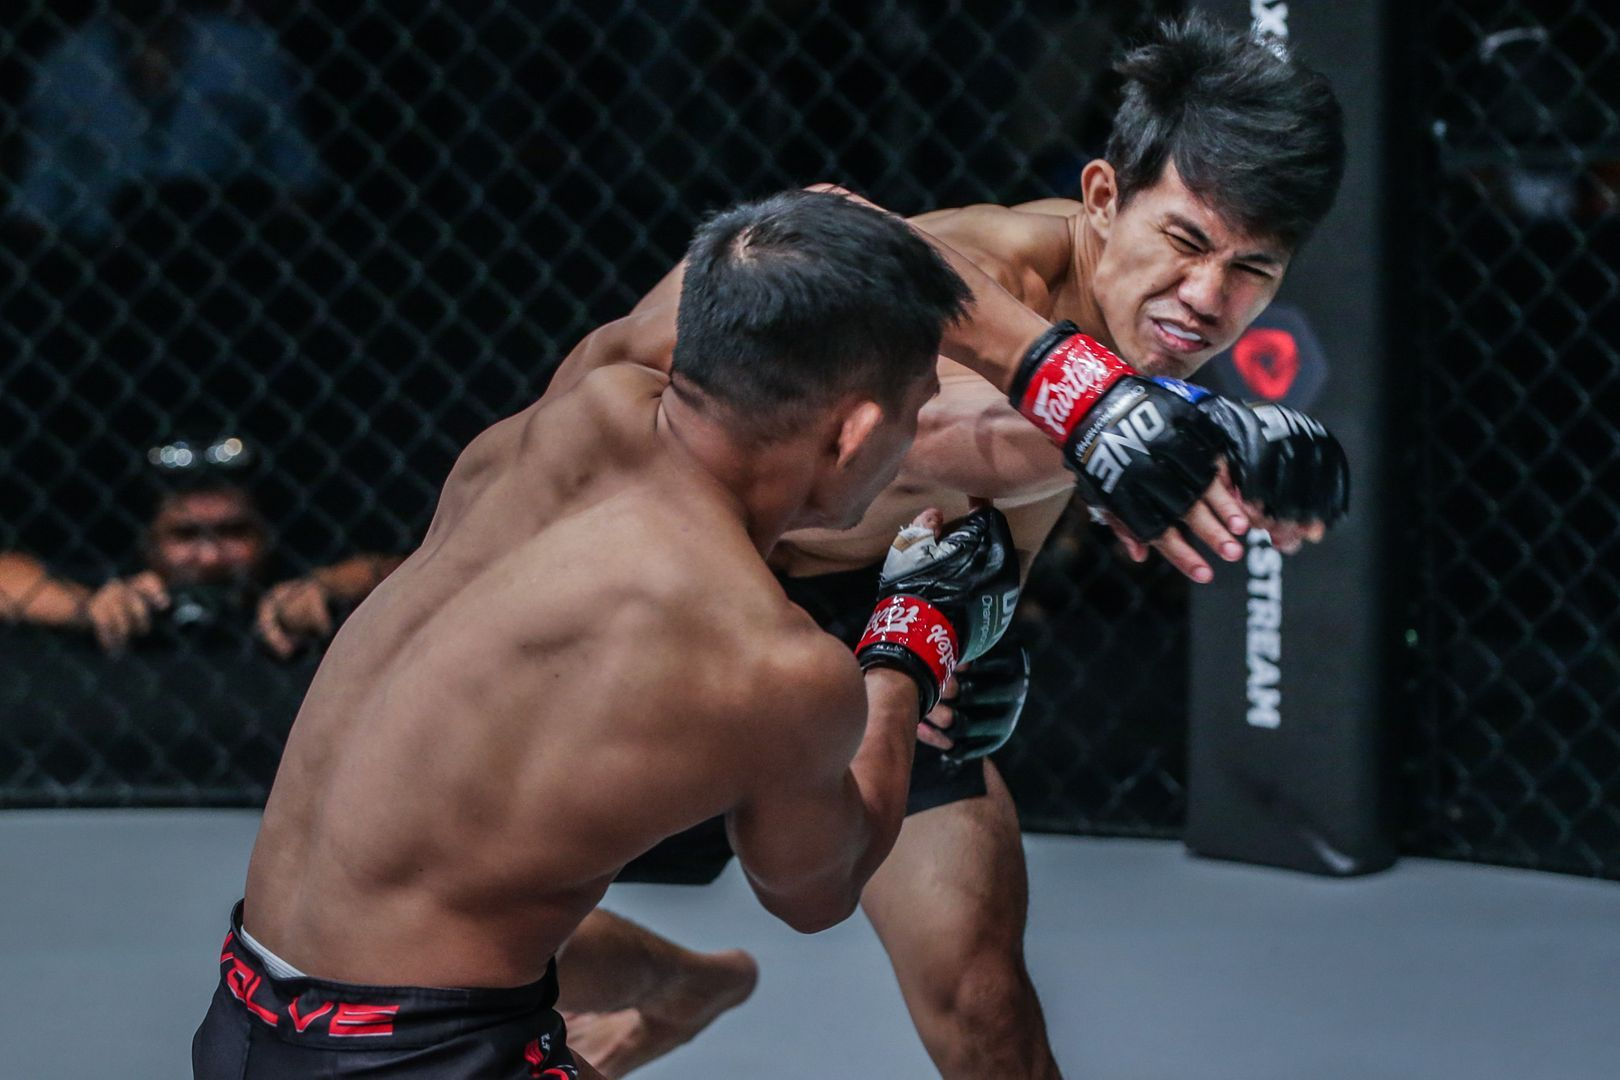 Eko Roni Saputra defeats Kaji Ebin at ONE DAWN OF VALOR